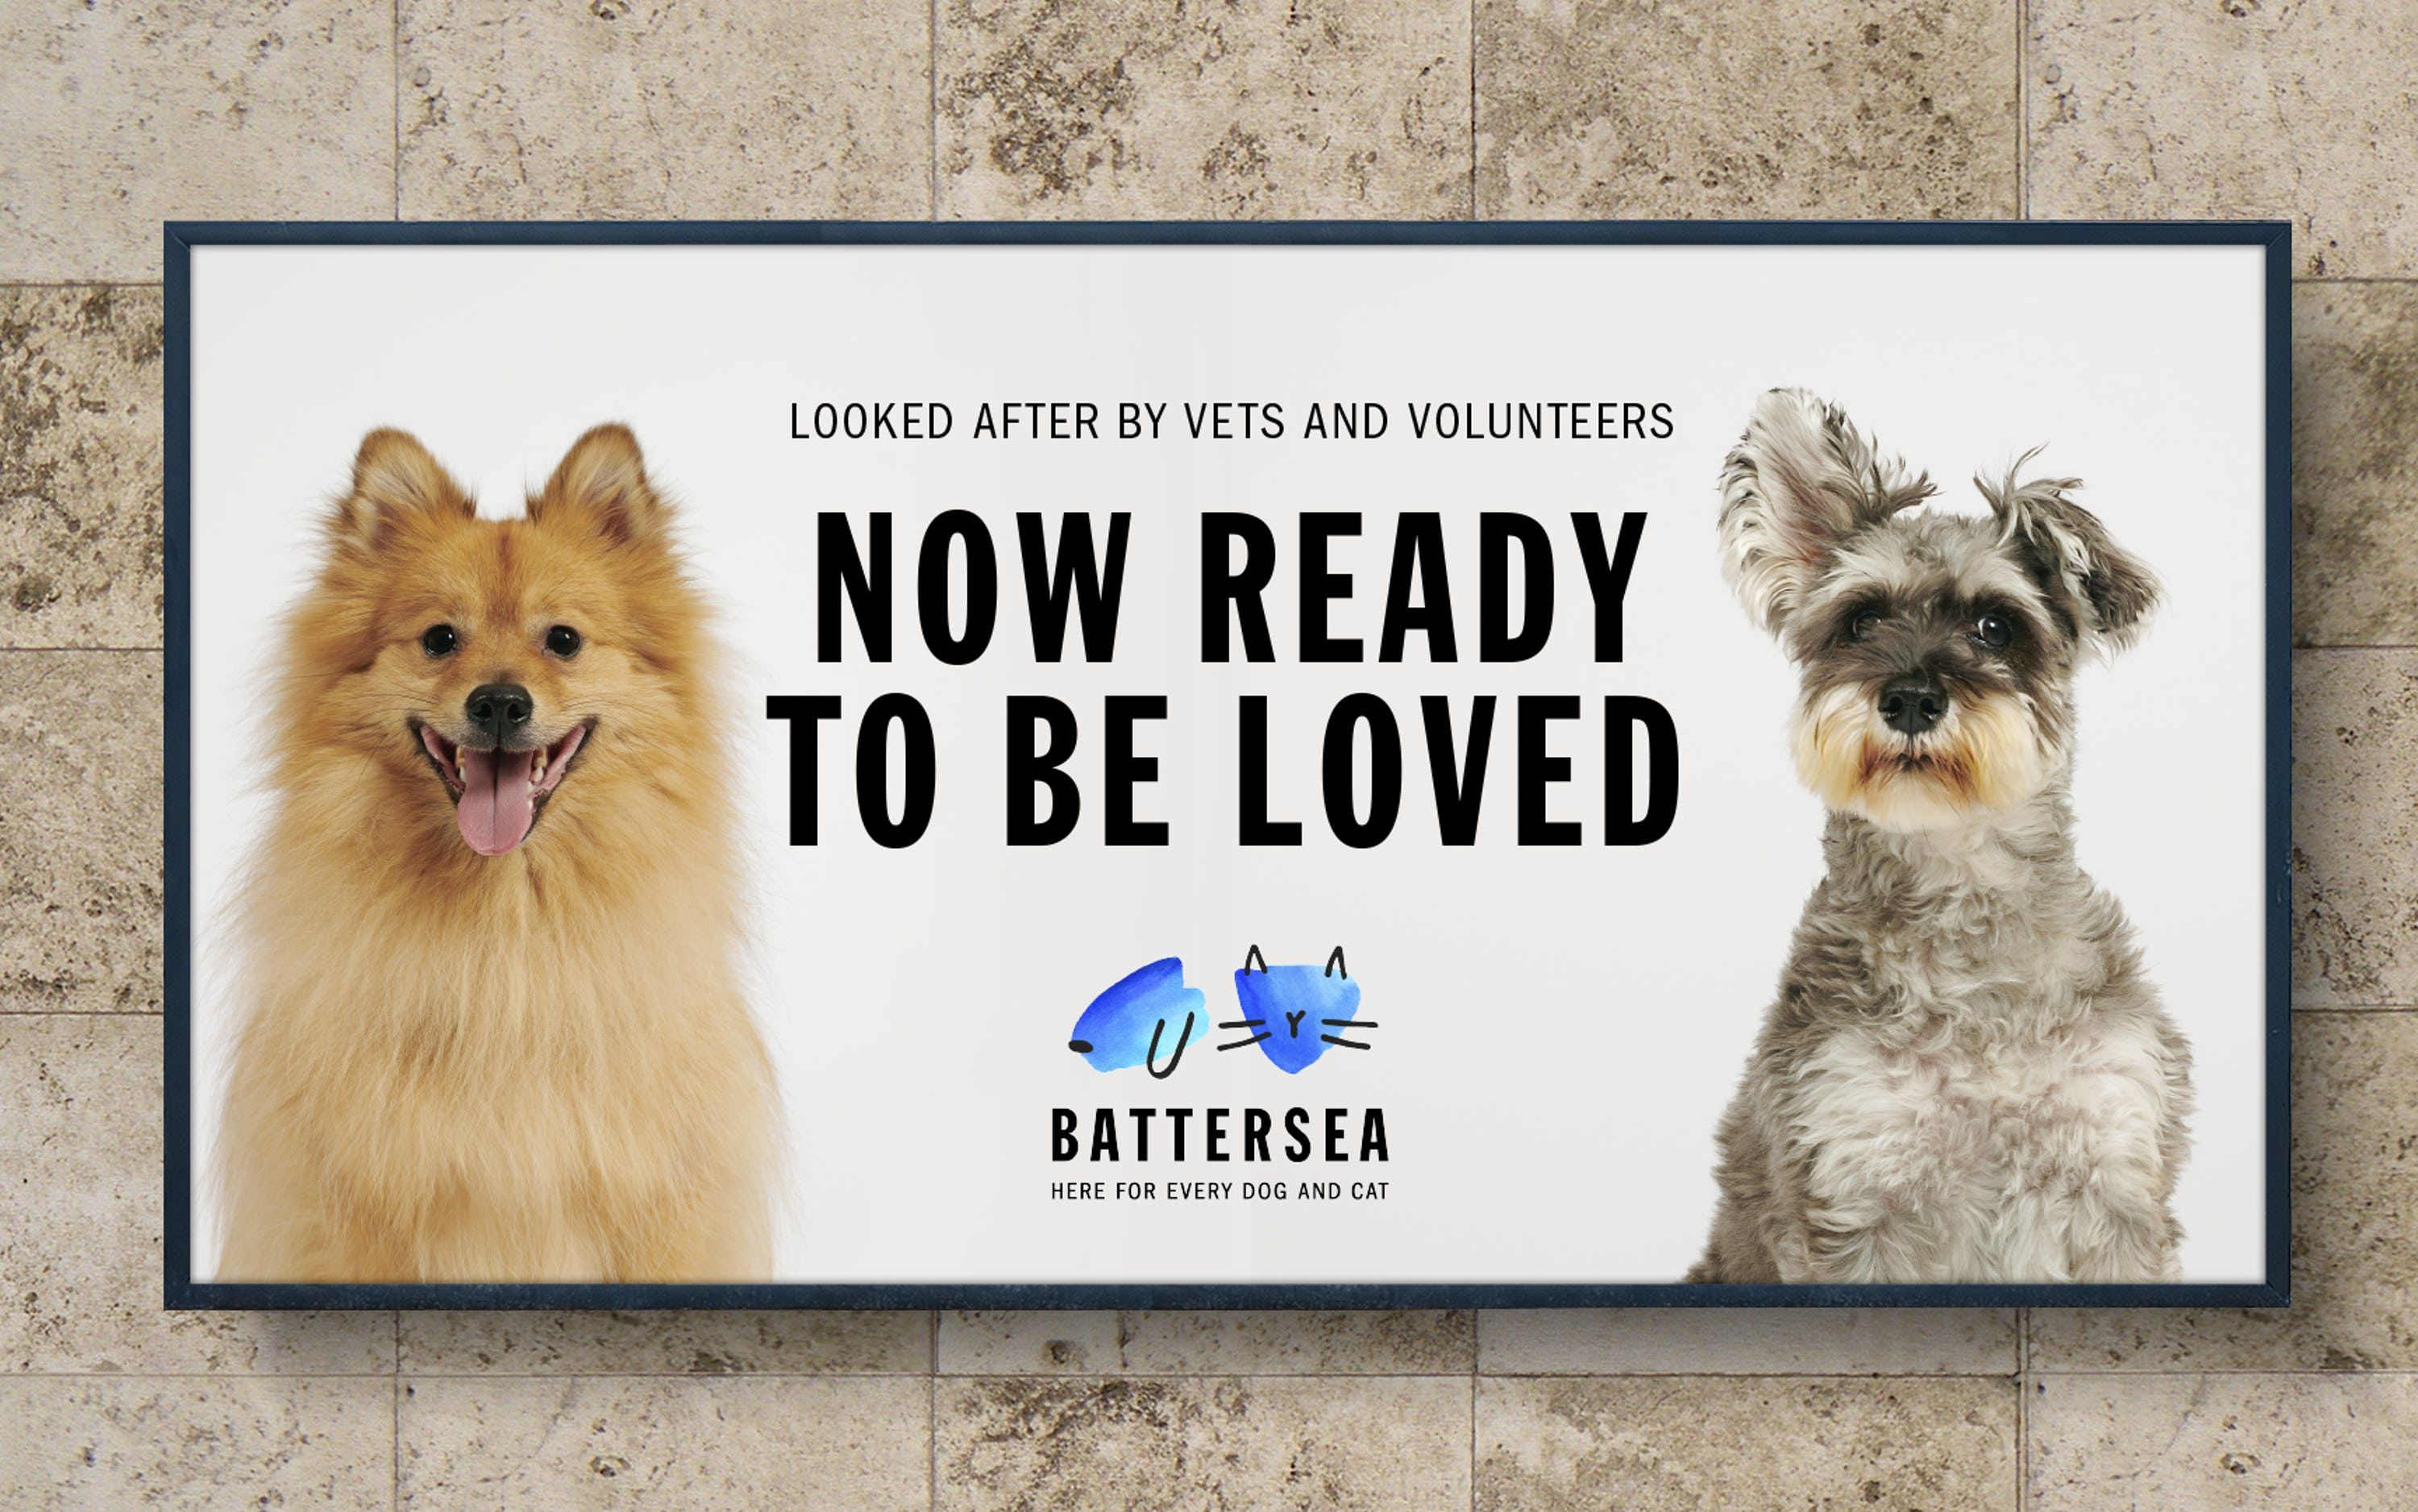 Battersea Brand Strategy Tone Of Voice And Visual Identity For One Of Britain S Oldest And Most Famous Ani Battersea Dogs Dog Charities Battersea Dogs Home